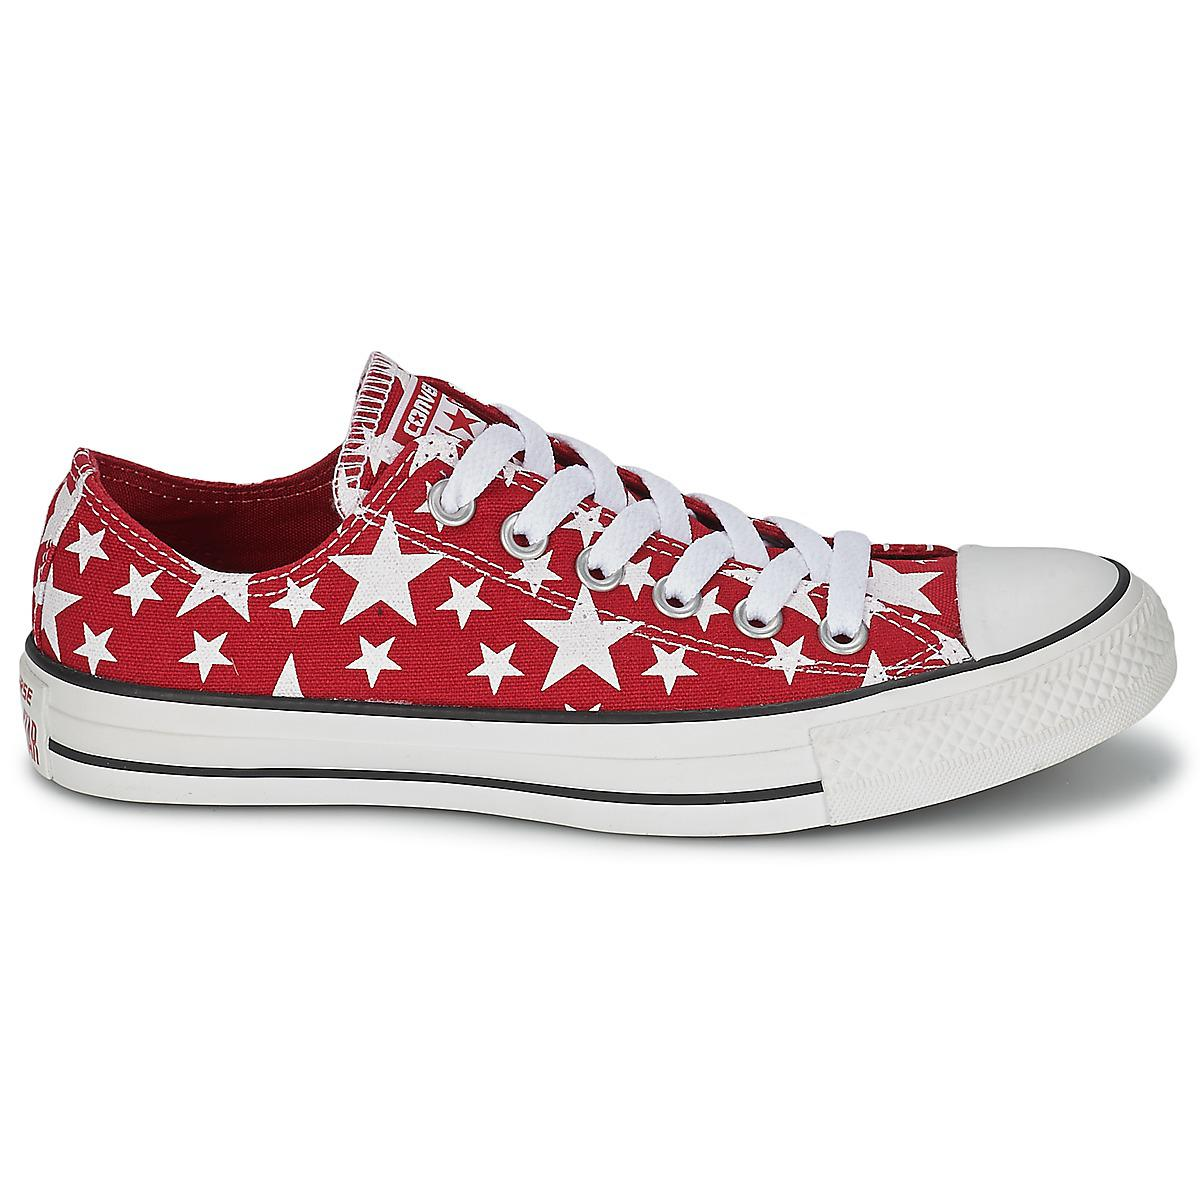 57c4fc49d9 Converse - Chuck Taylor All Star Multi Star Print Ox Men's Shoes (trainers)  In. View fullscreen